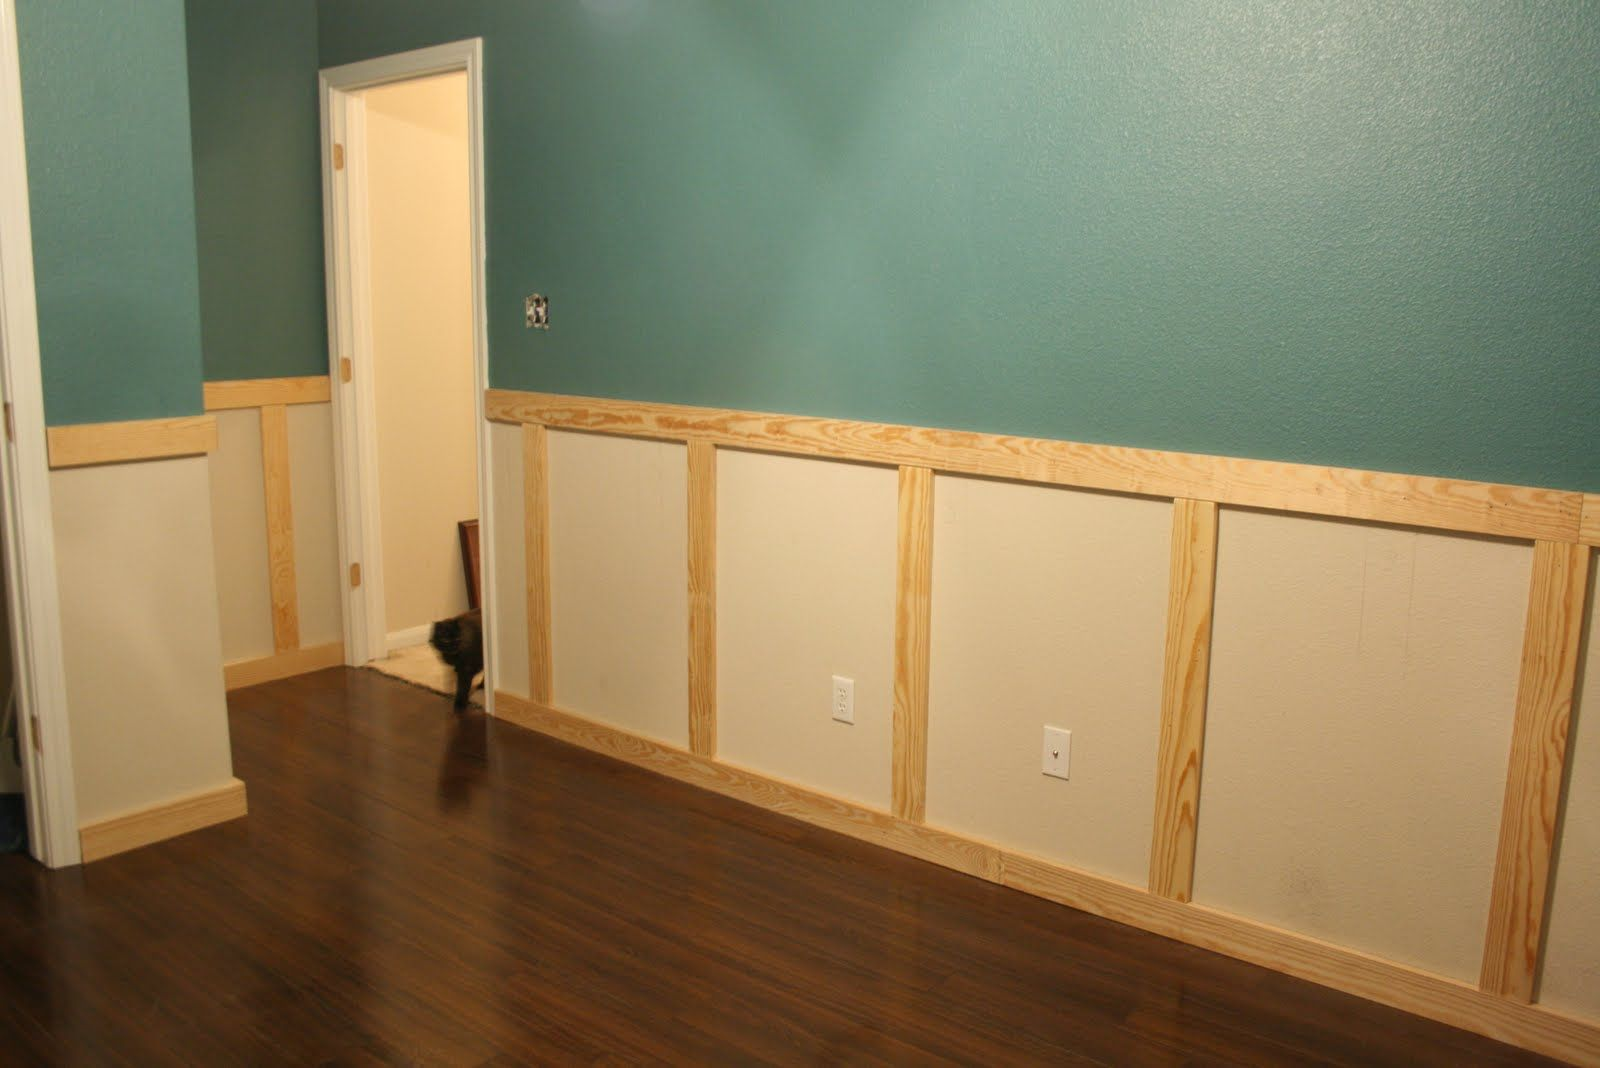 How to Balance Wall & Wainscot Paint Colors | Picture frame ...